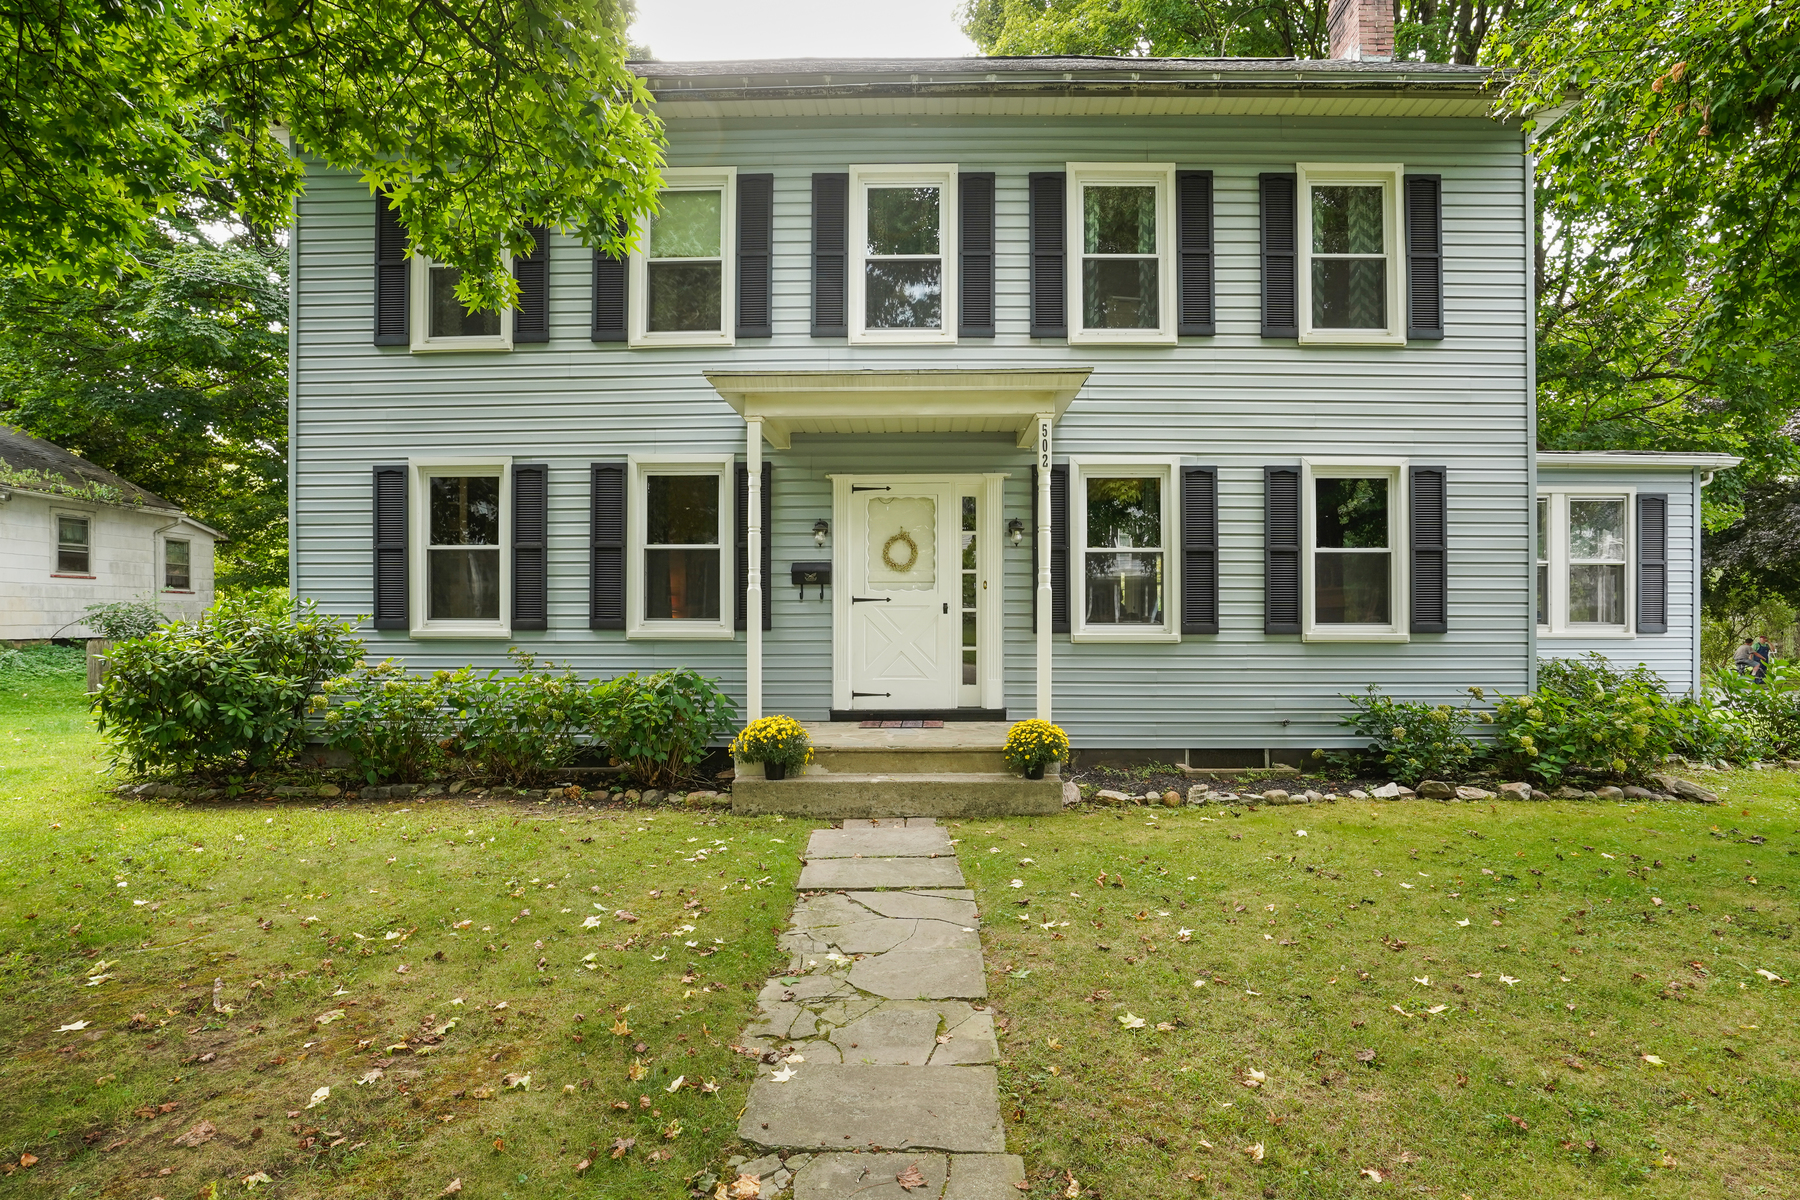 Single Family Homes for Sale at Character and Charm Abound 502 Mansfield Street, Belvidere, New Jersey 07823 United States